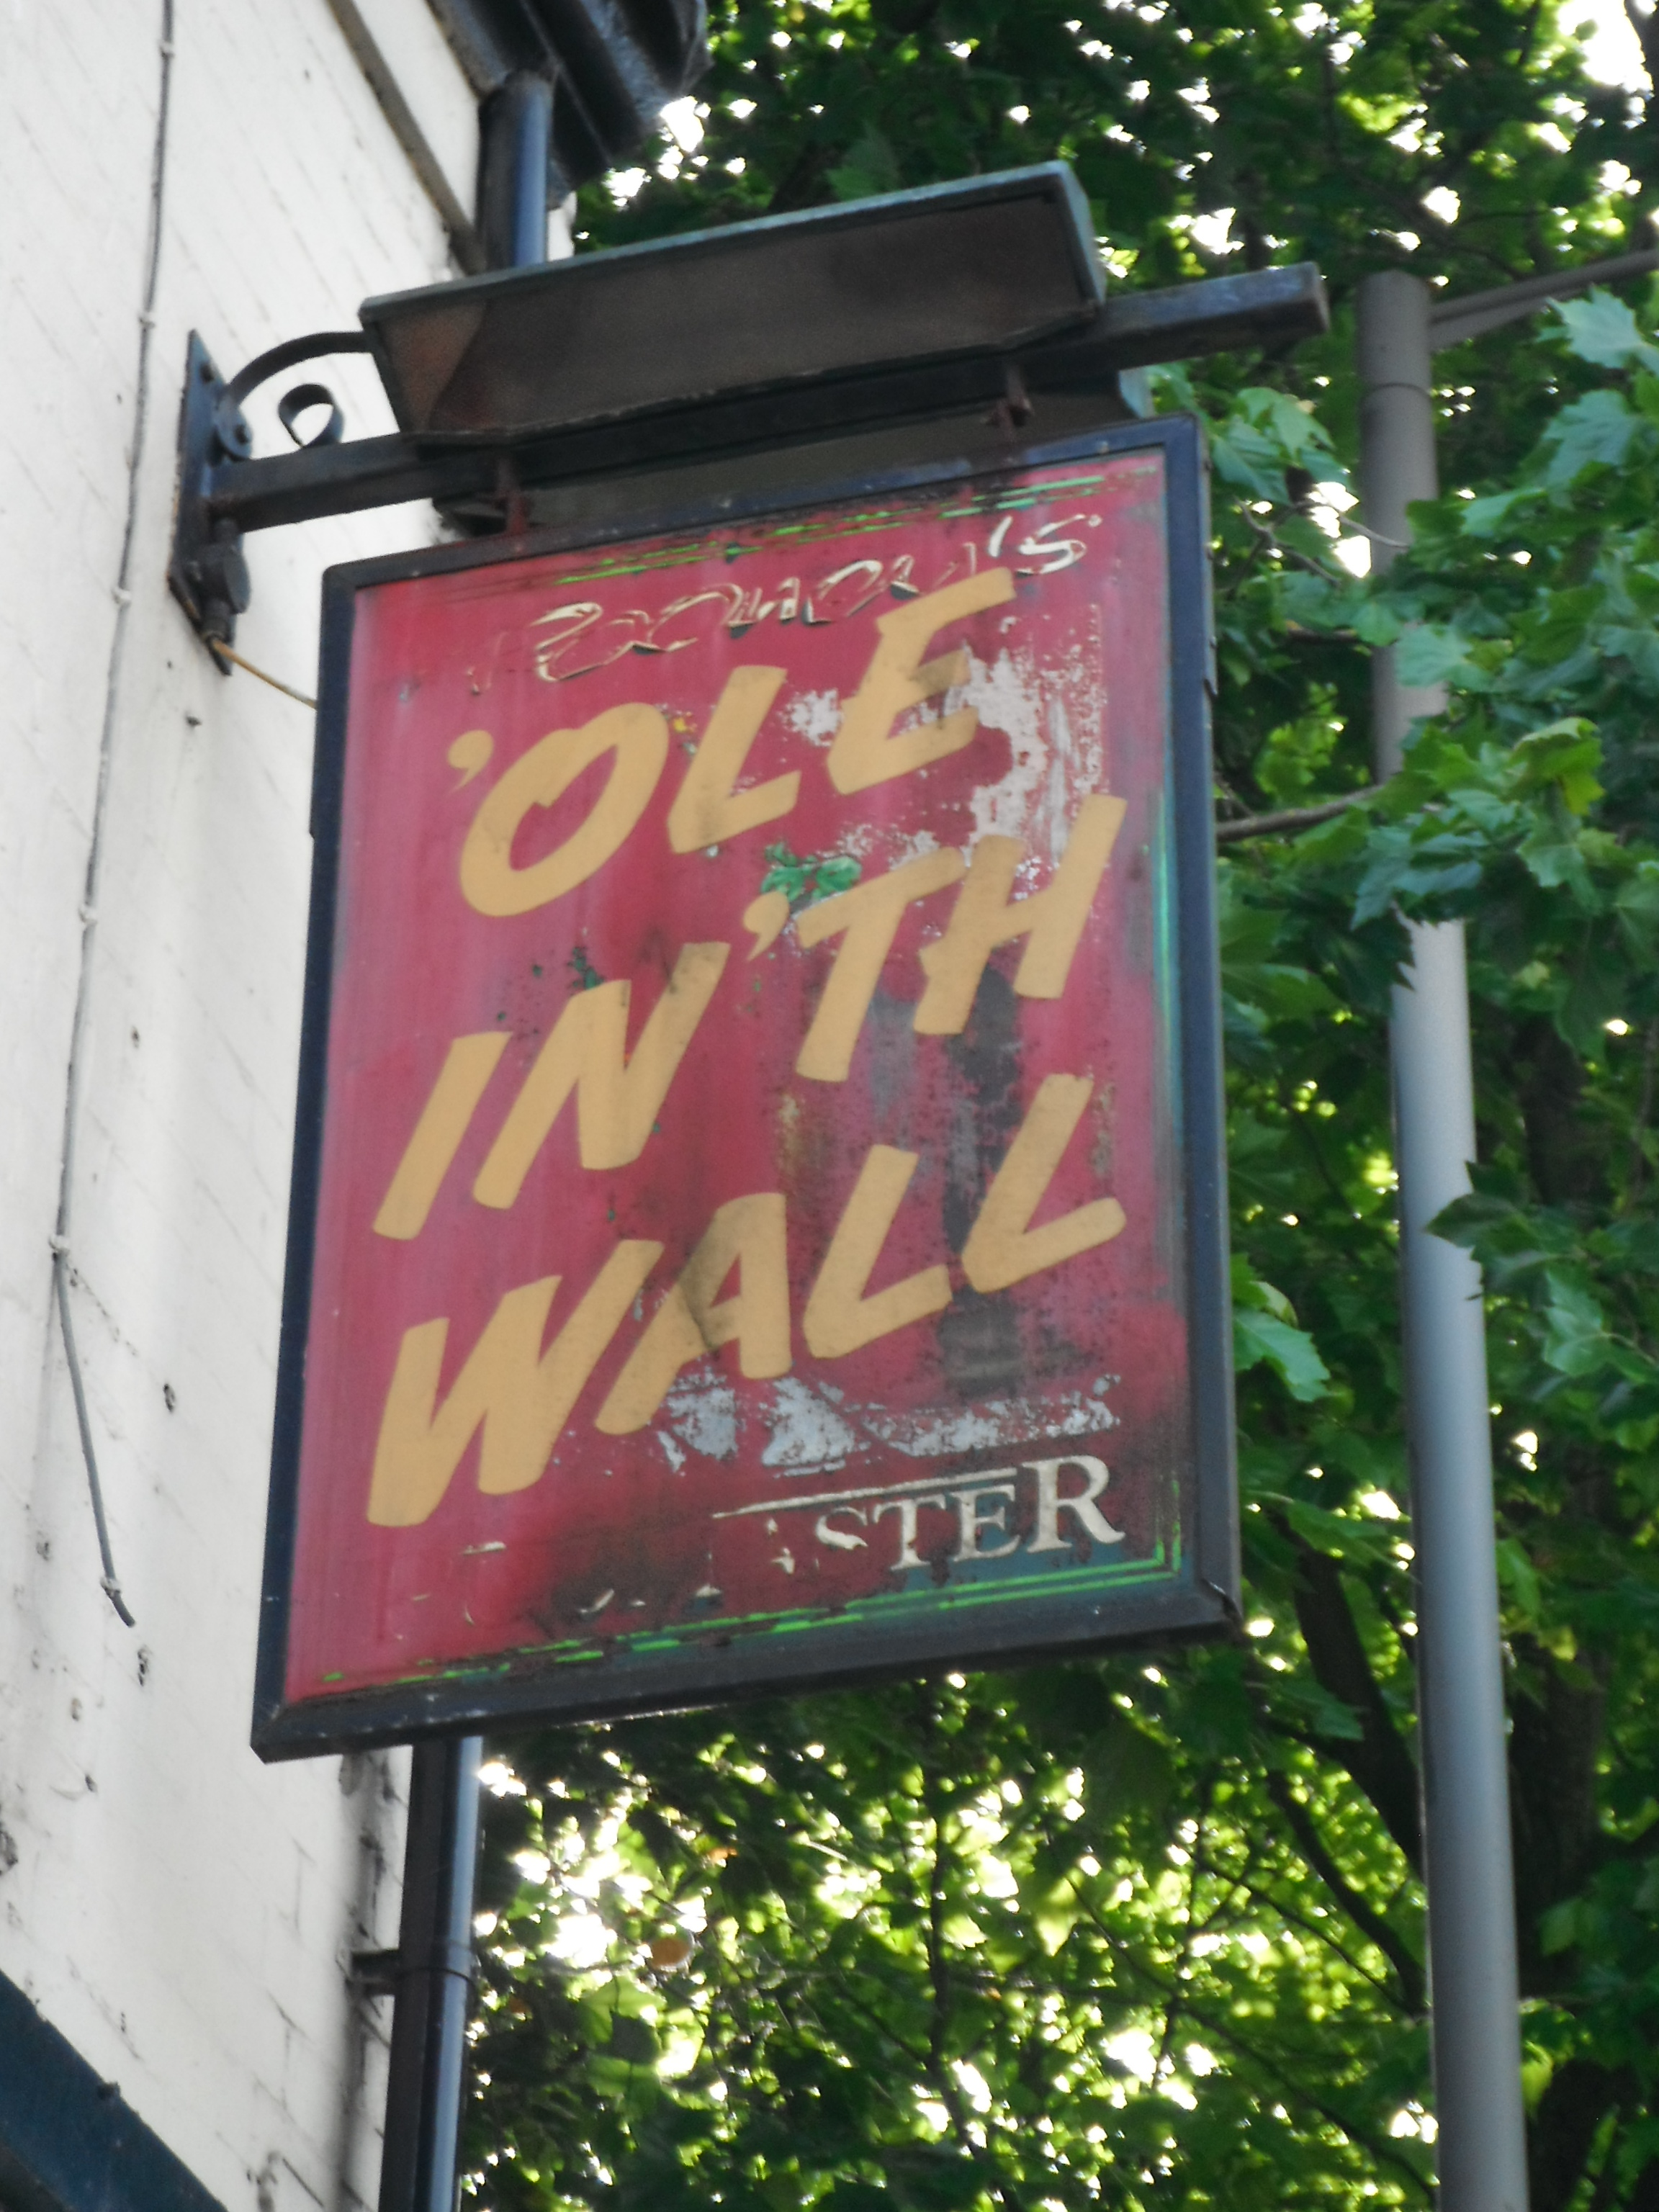 Photo taken by me – The 'Ole In The Wall pub sign, Preston